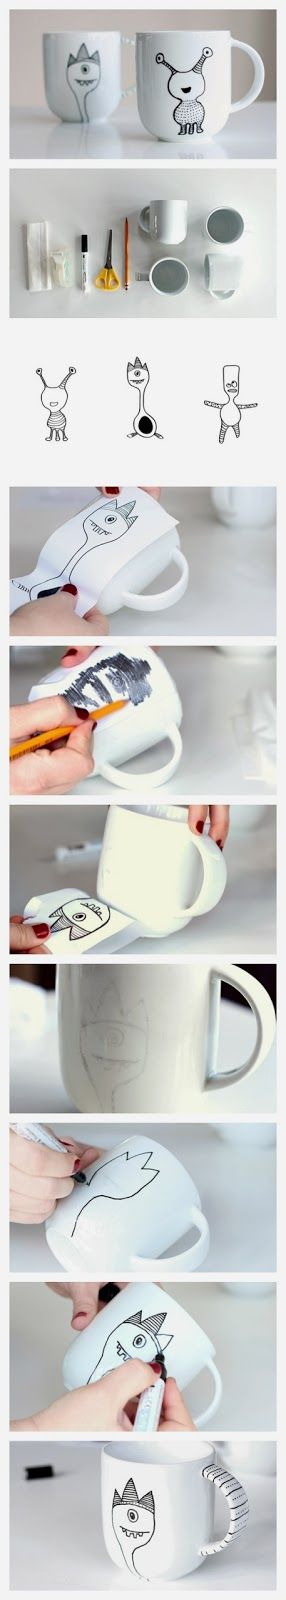 easy diy crafts learn how to decorate a coffee mug with a. Black Bedroom Furniture Sets. Home Design Ideas